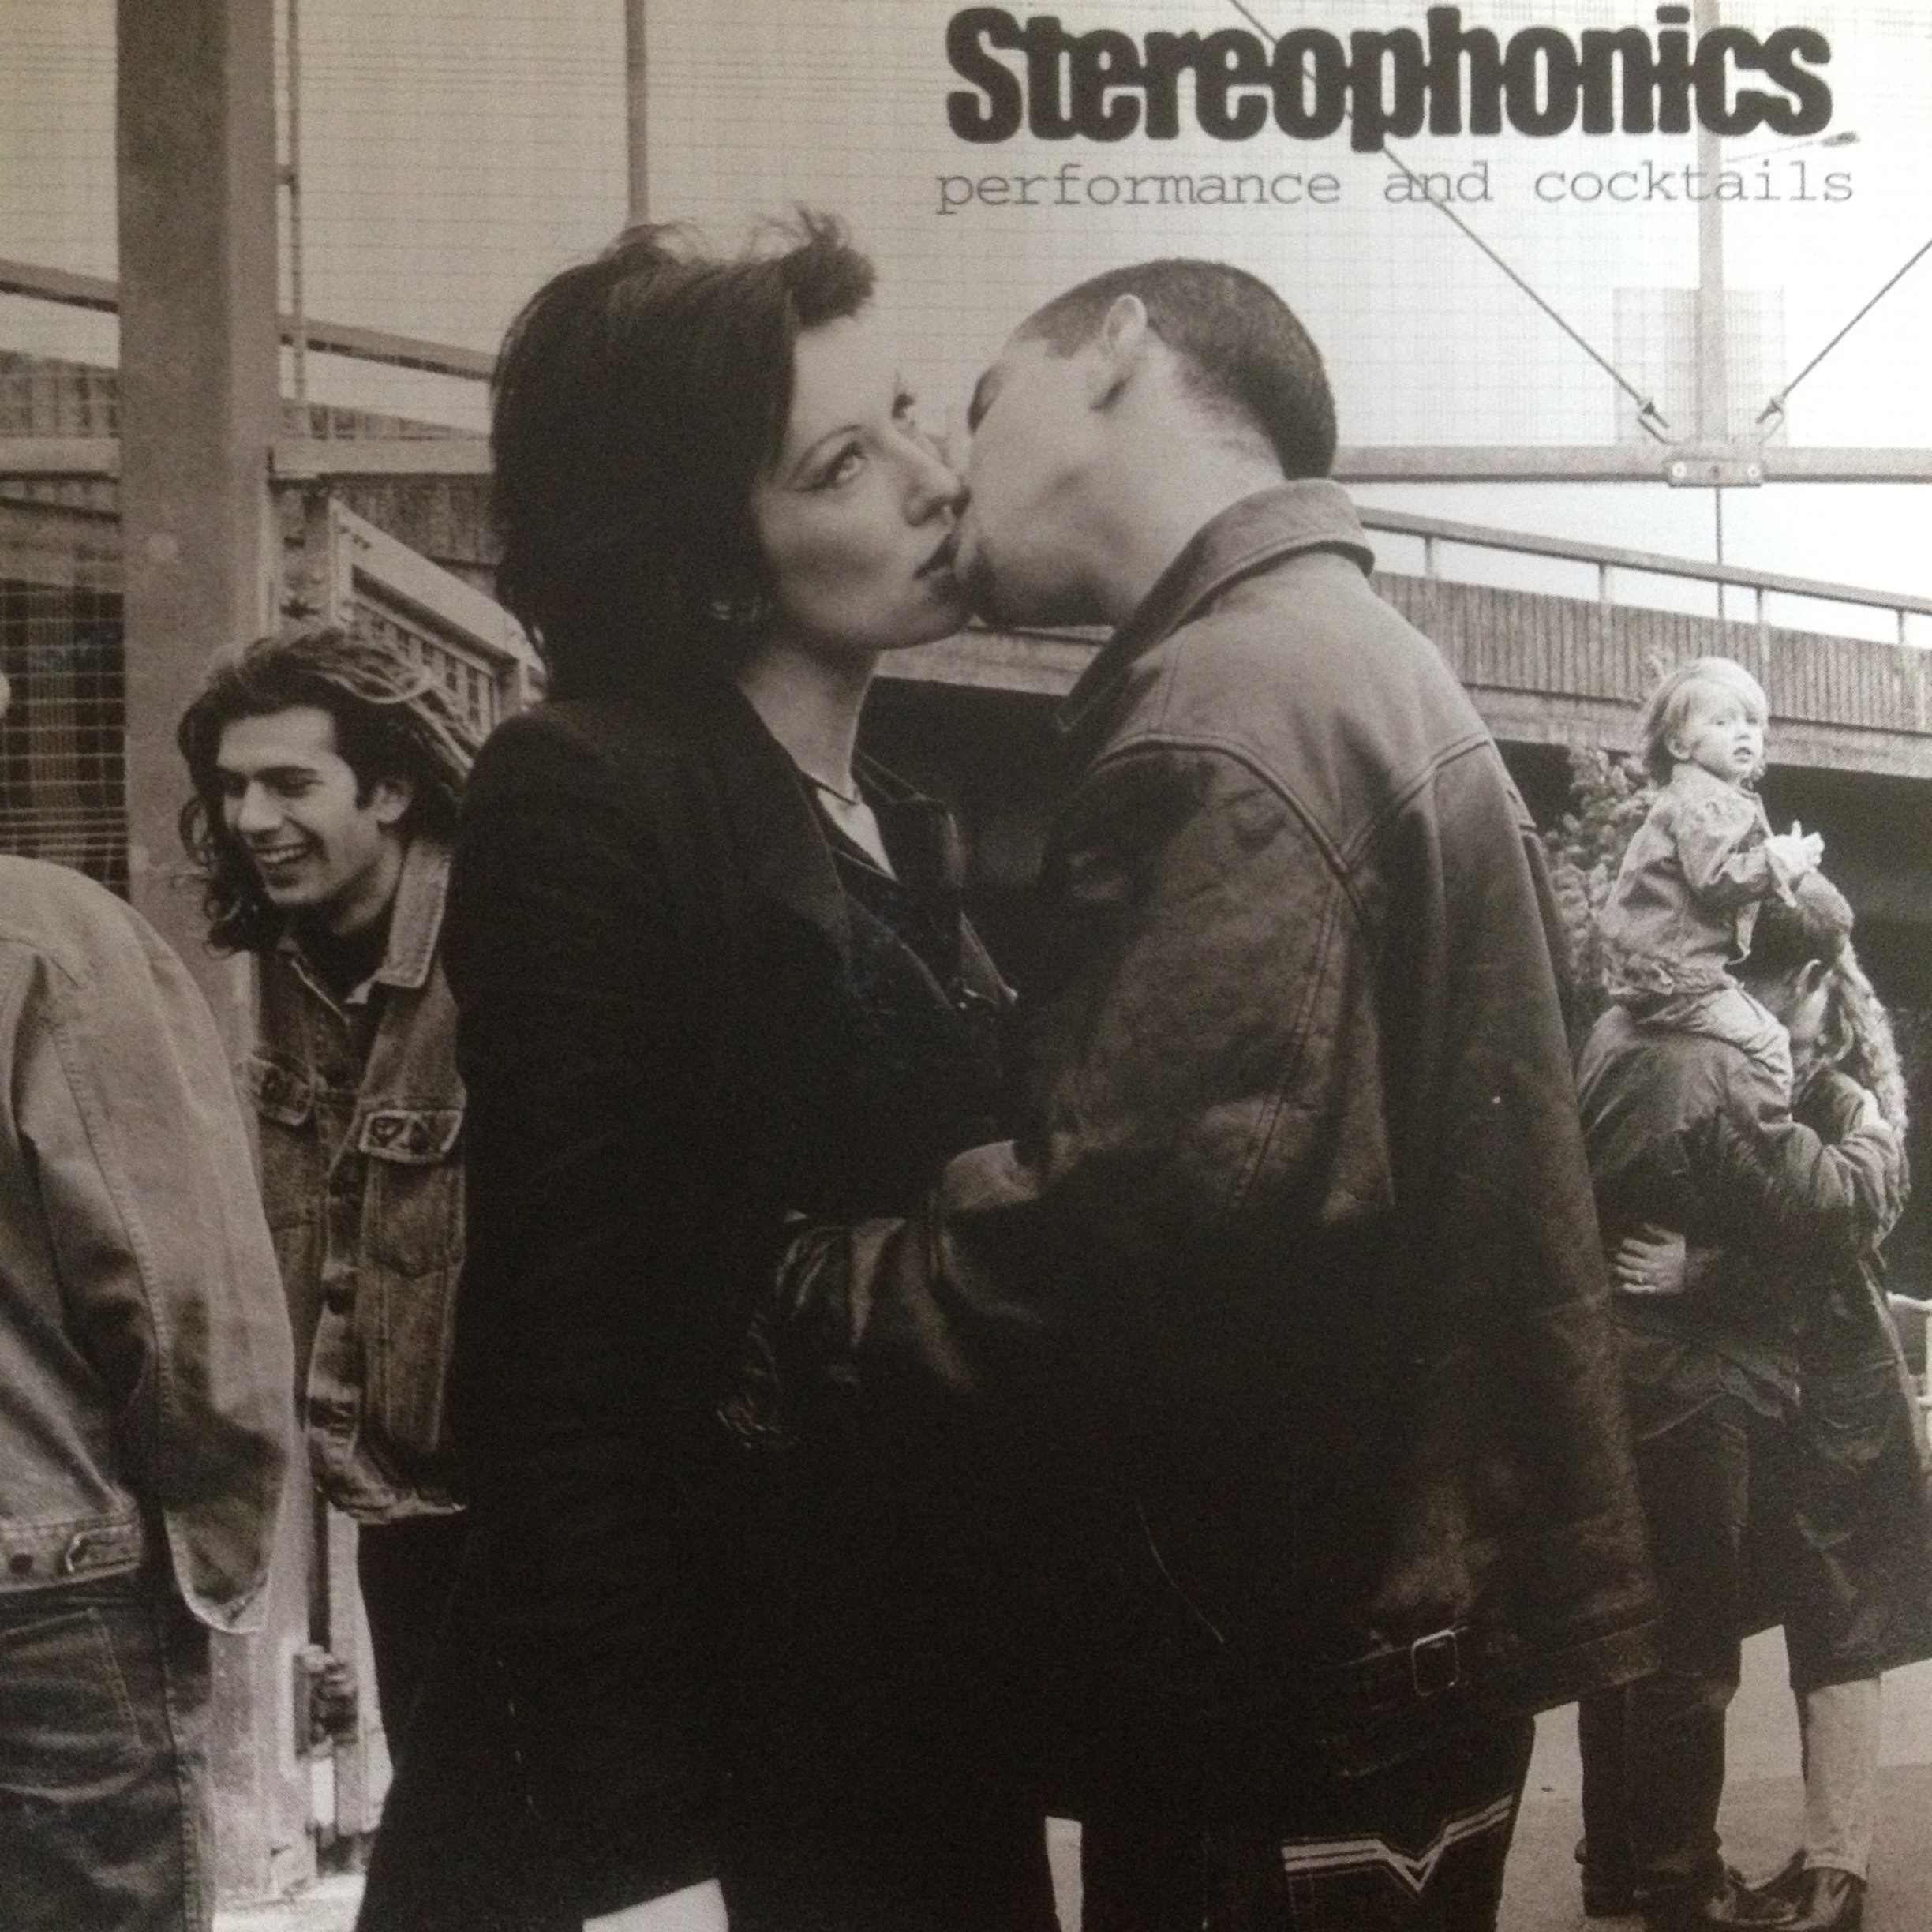 Stereophonics 「JUST LOOKING」